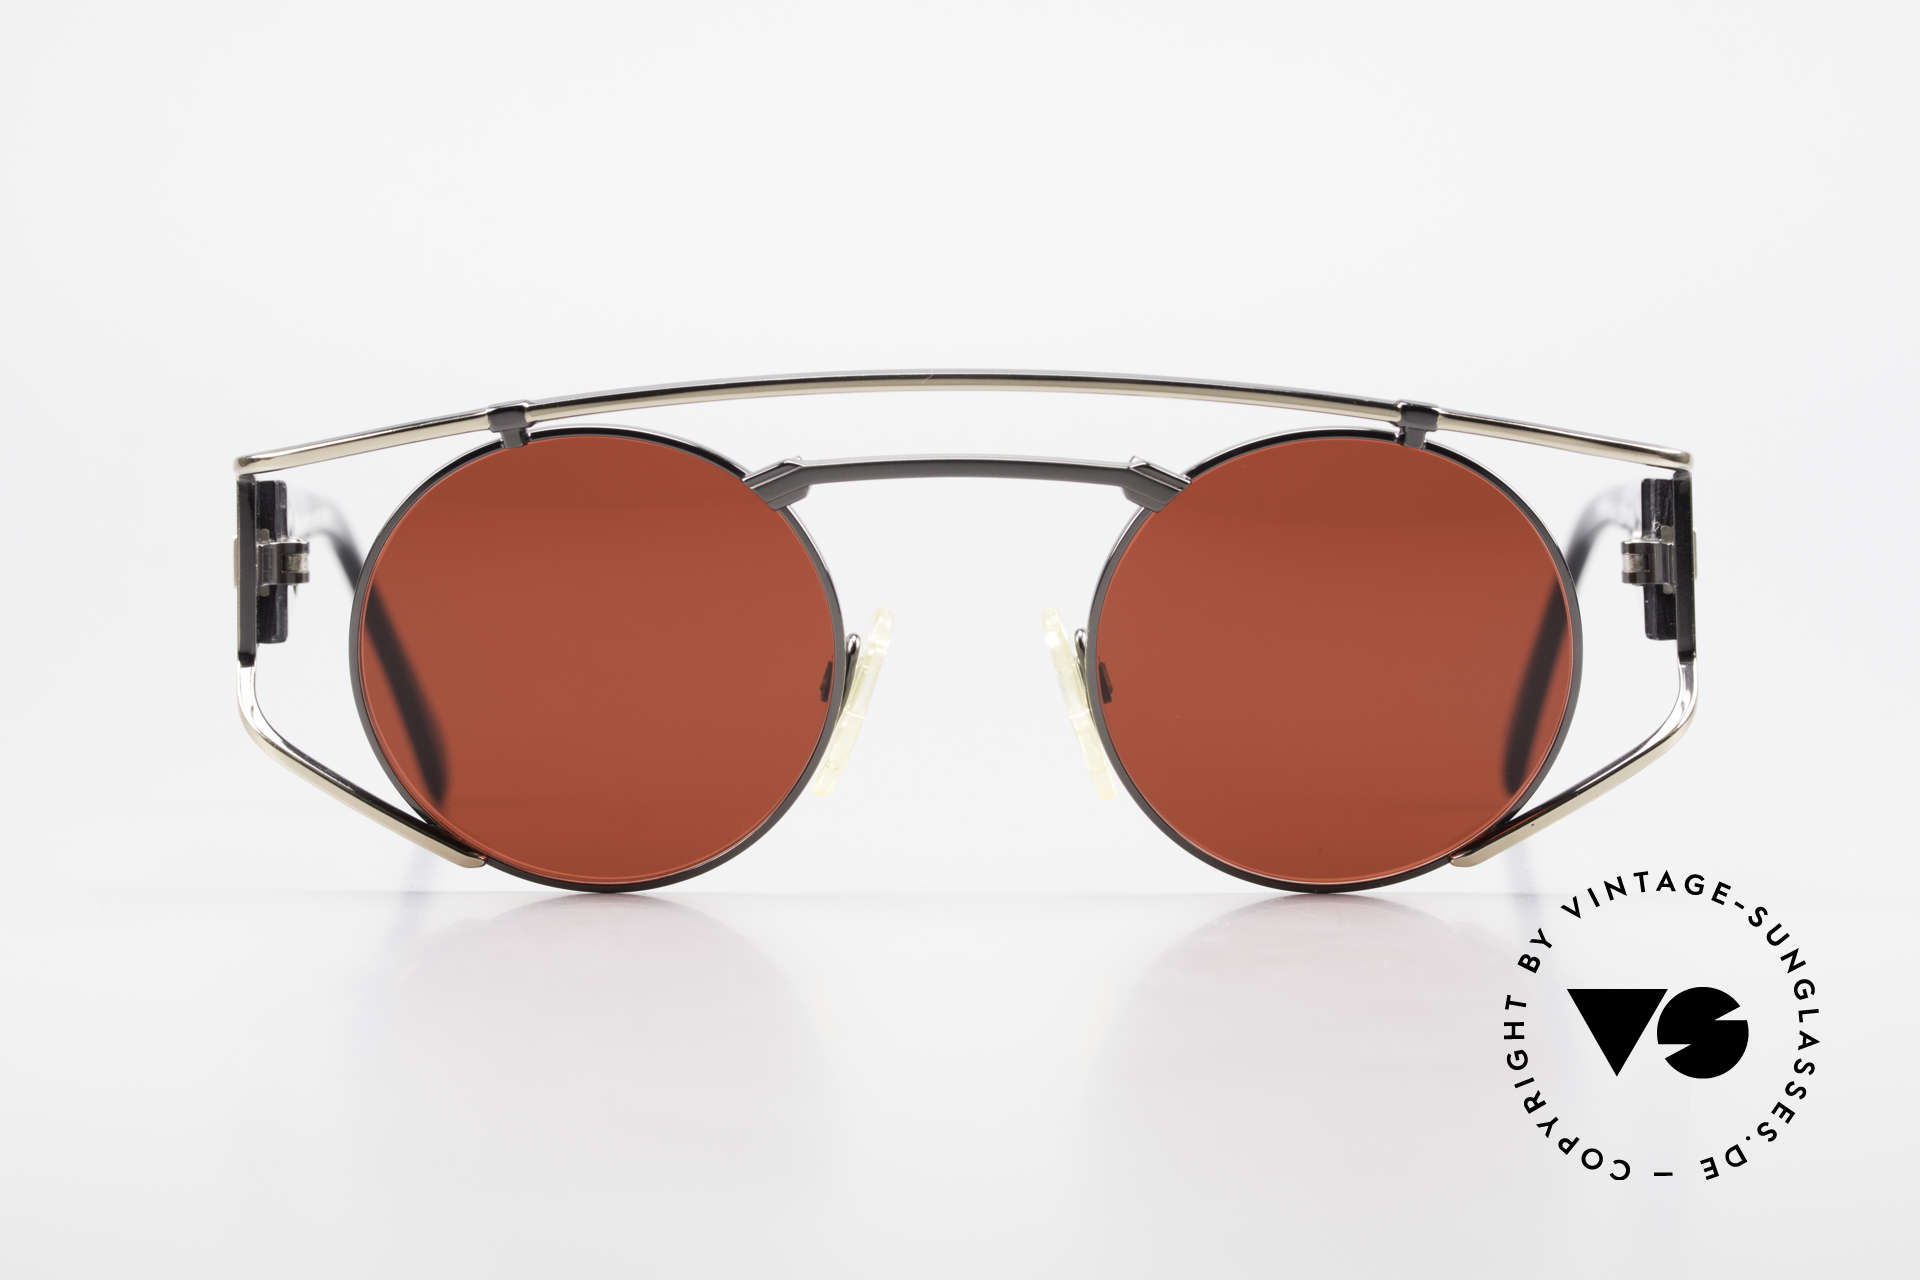 """Neostyle Superstar 1 Steampunk Sunglasses 3D Red, the name says it all: """"SUPERSTAR vintage glasses"""", Made for Men and Women"""